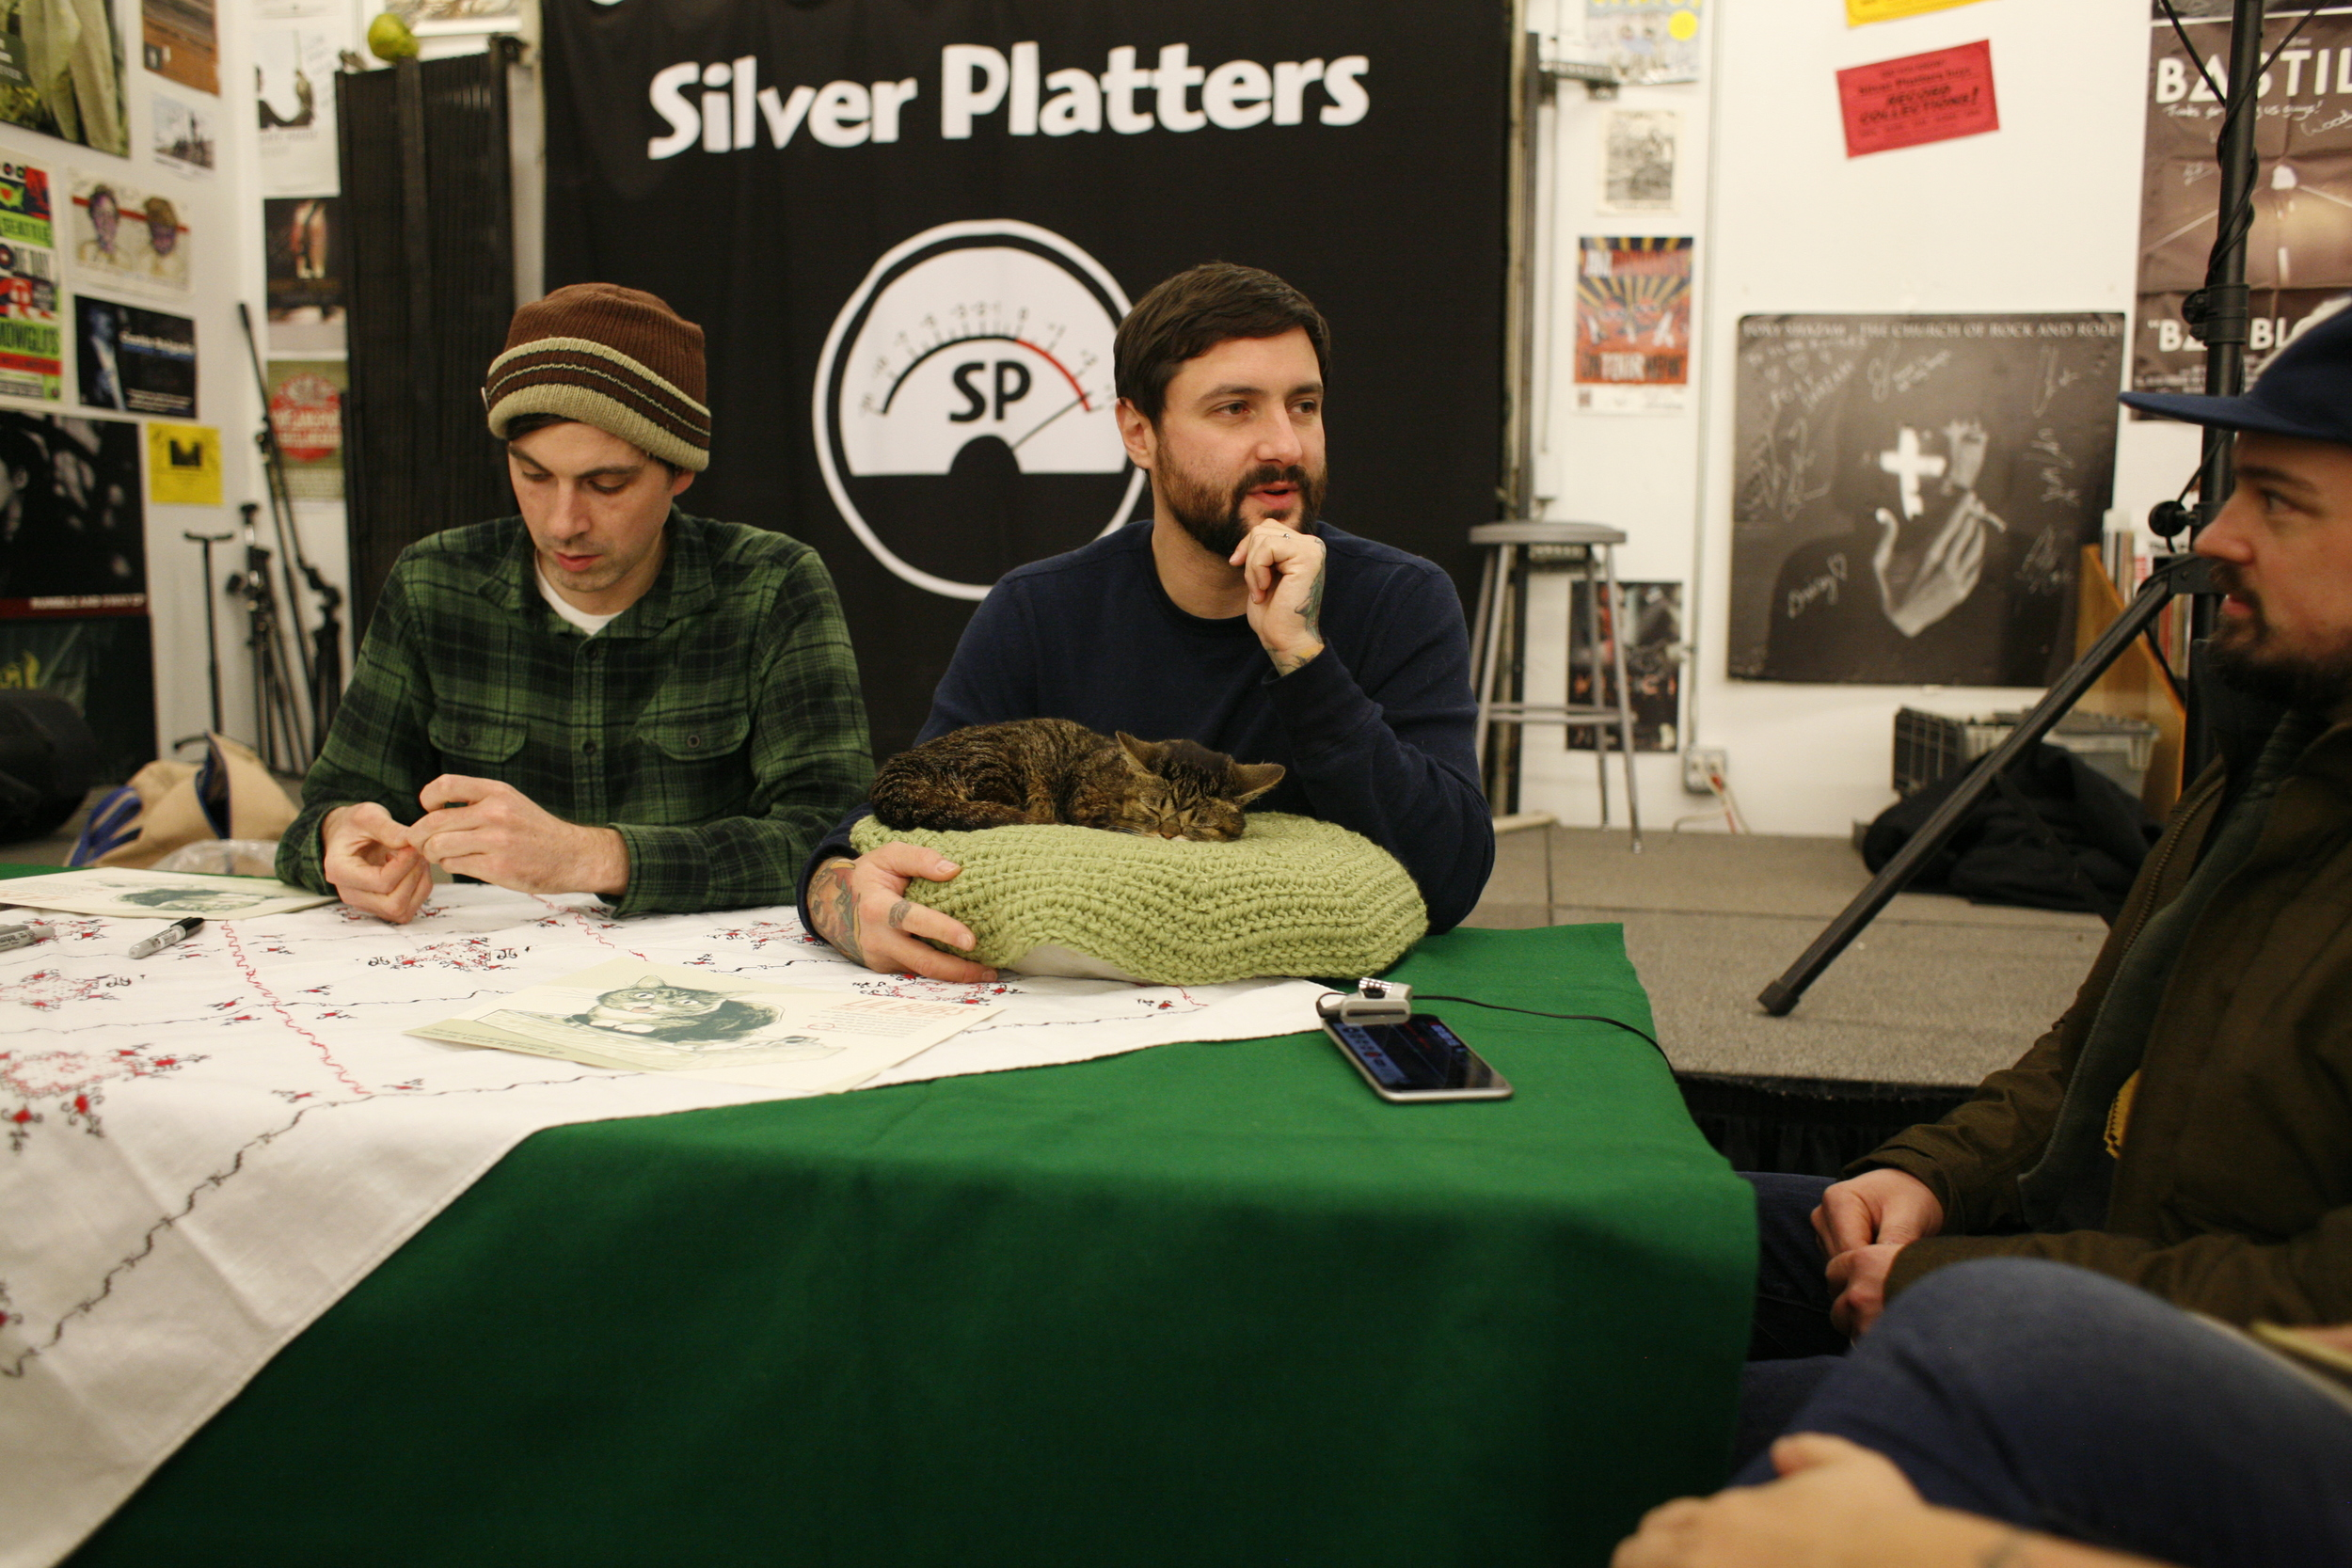 Matt Tobey, Lil Bub, Mike Bridavsky and yours truly, chatting it up at Silver Platters in Seattle, WA.